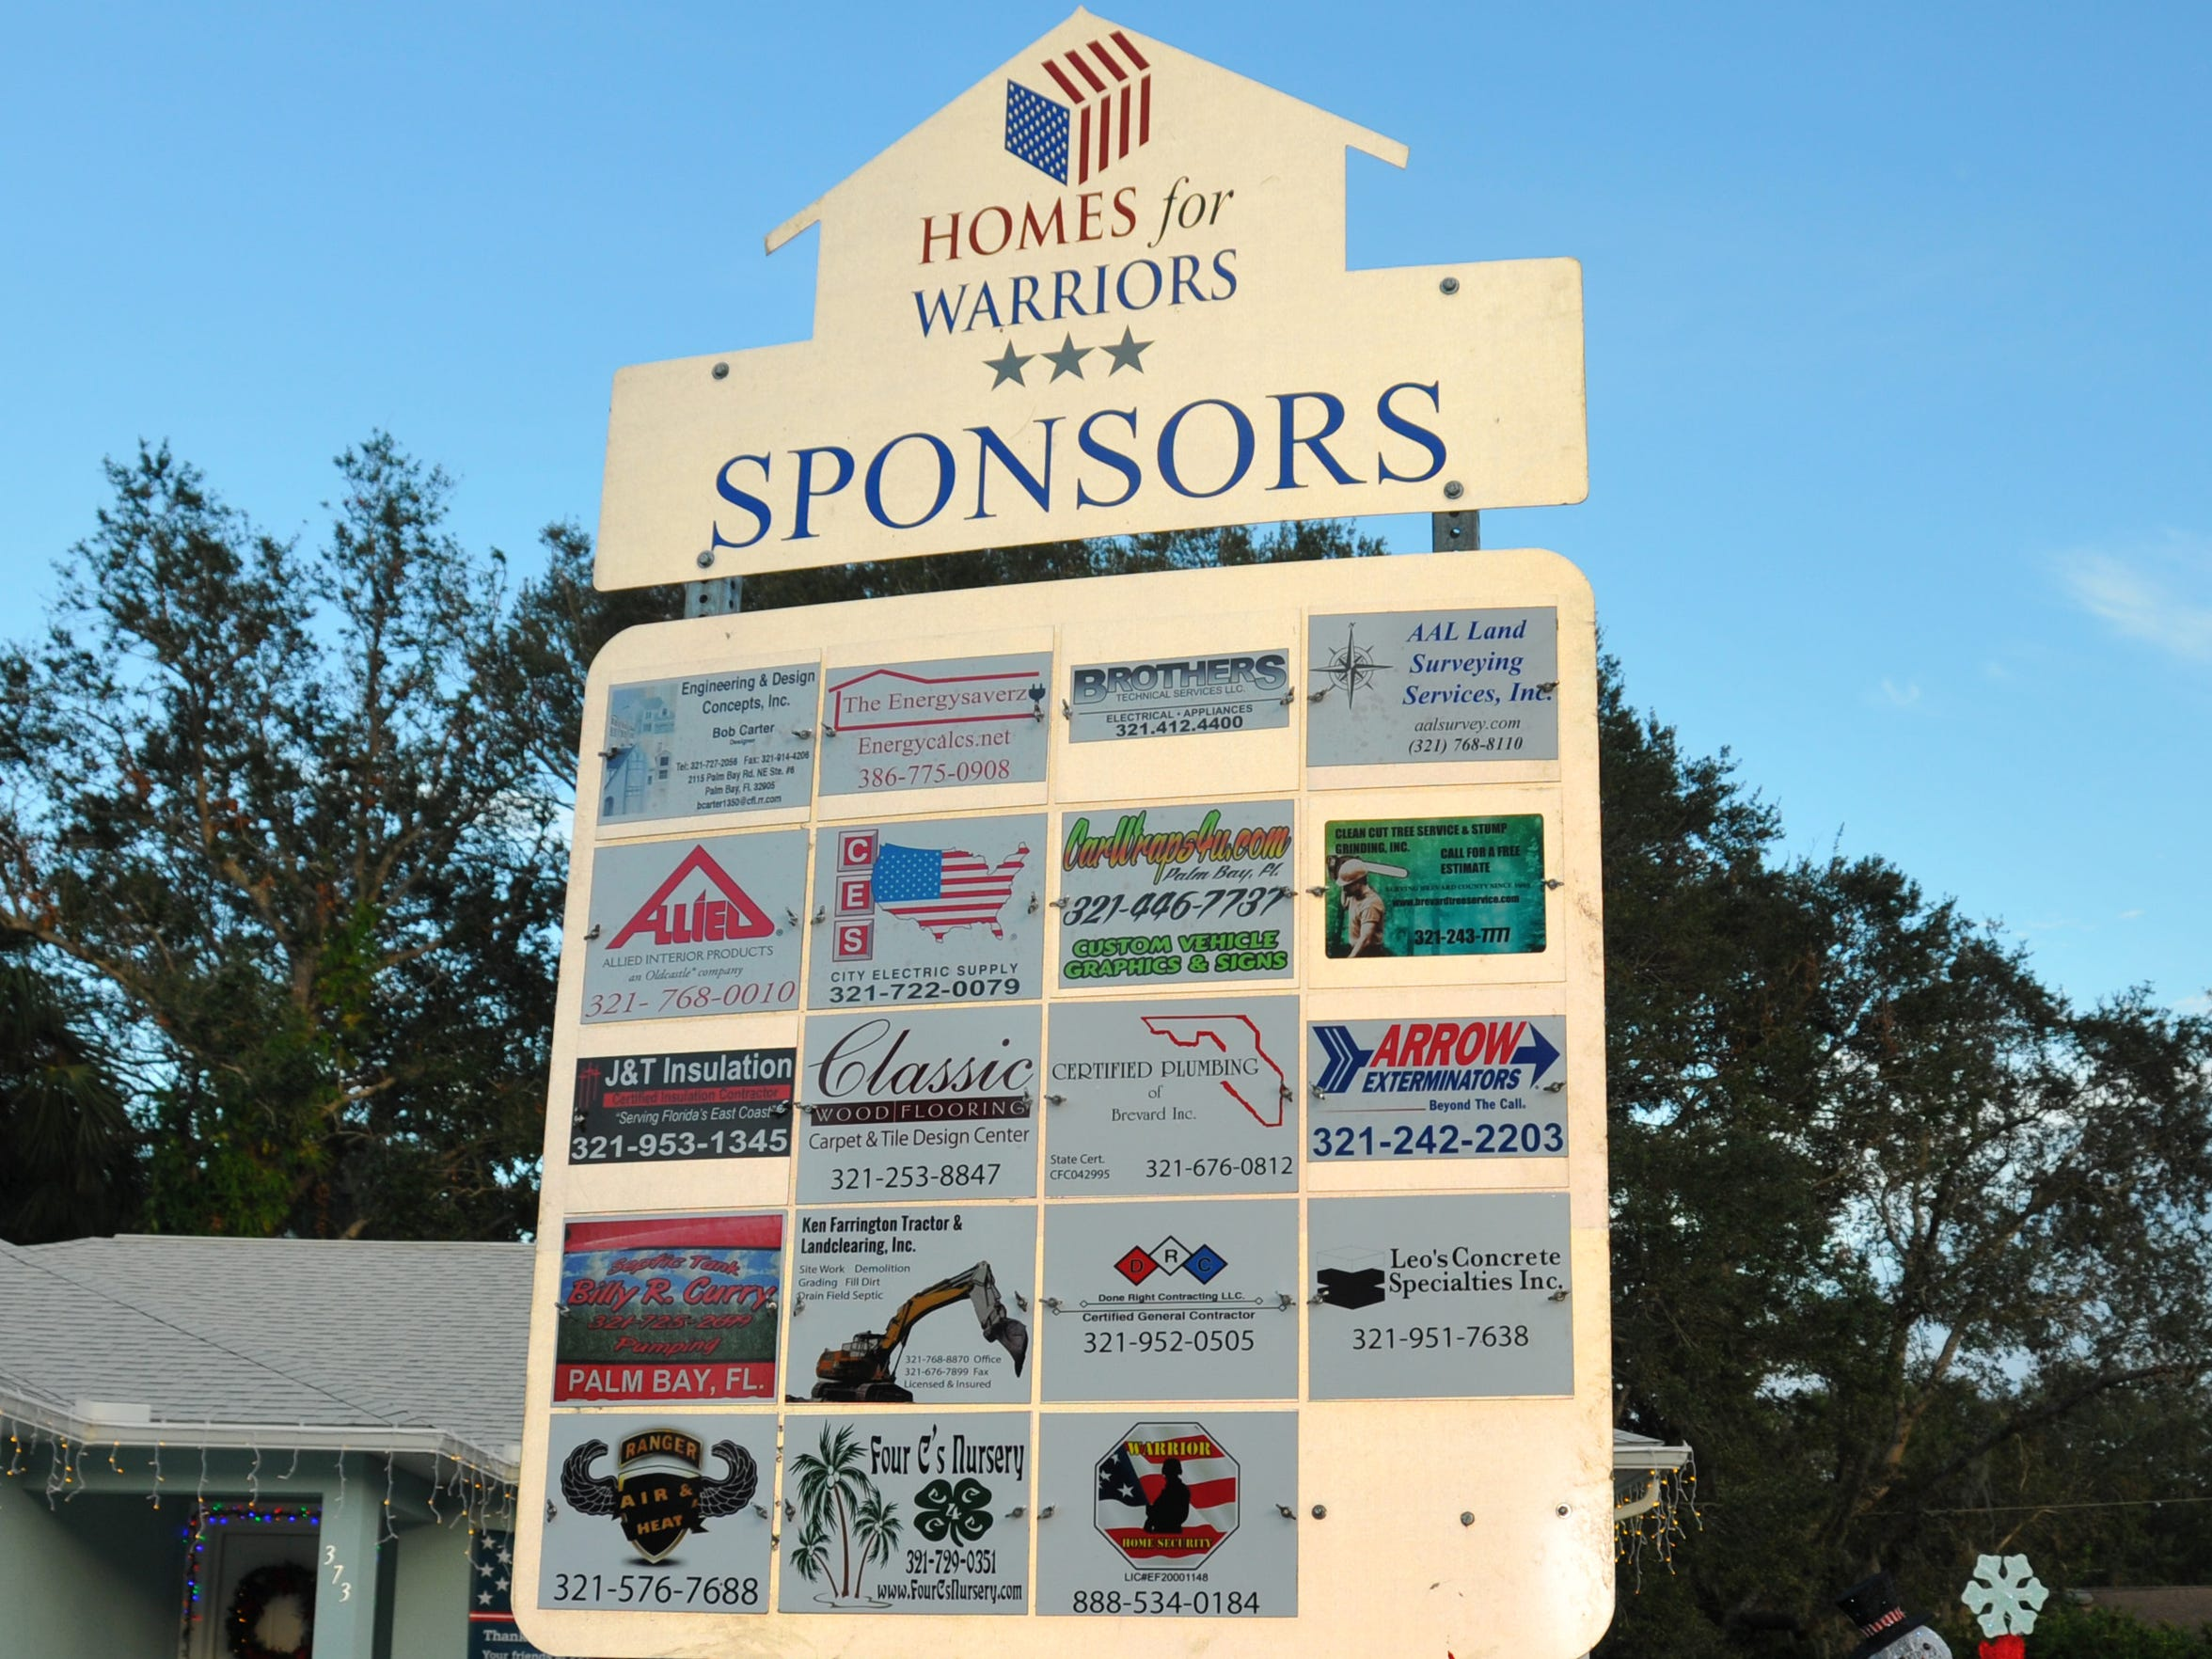 Palm Bay has used State Housing Initiatives Partnership